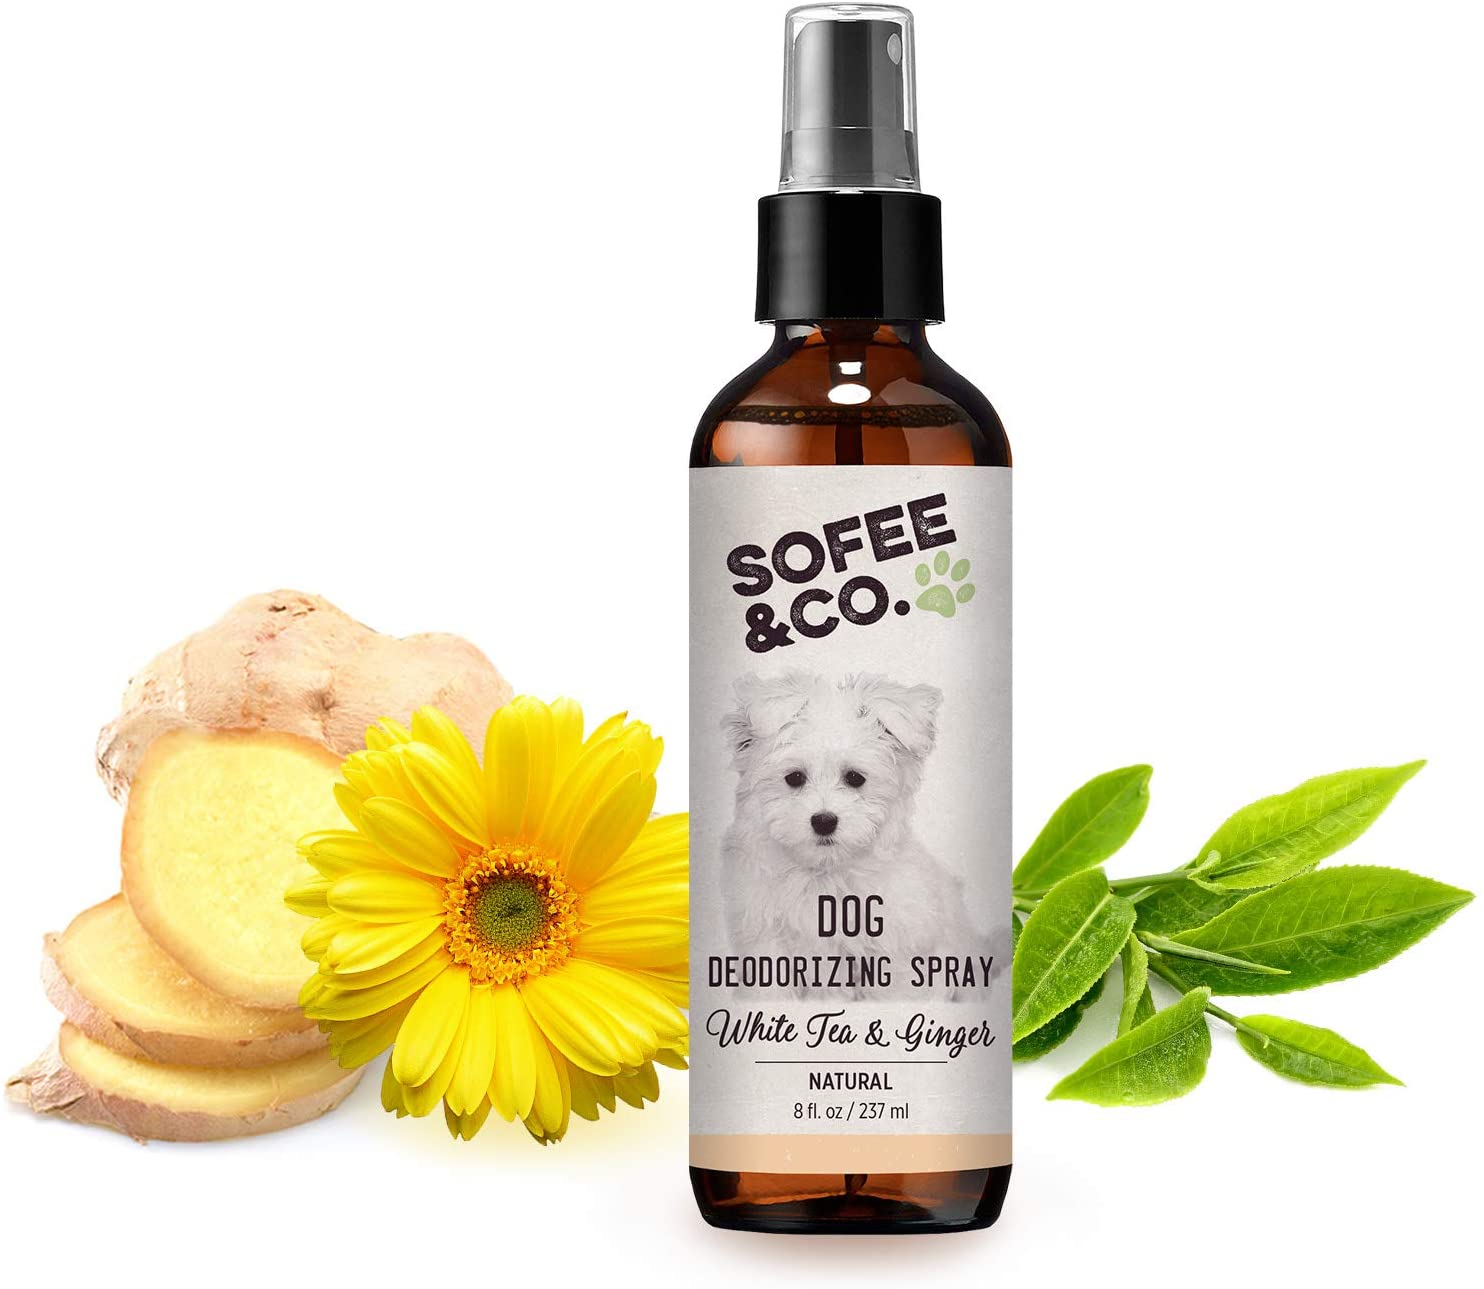 Sofee & Co. Natural Dog Puppy Deodorizing Grooming Spray Perfume Cologne - Odor Control Refresher. Groomer's Choice. Freshen Coats. Eliminate Odors. Use On Pets Bedding Furniture Room. Deodorant